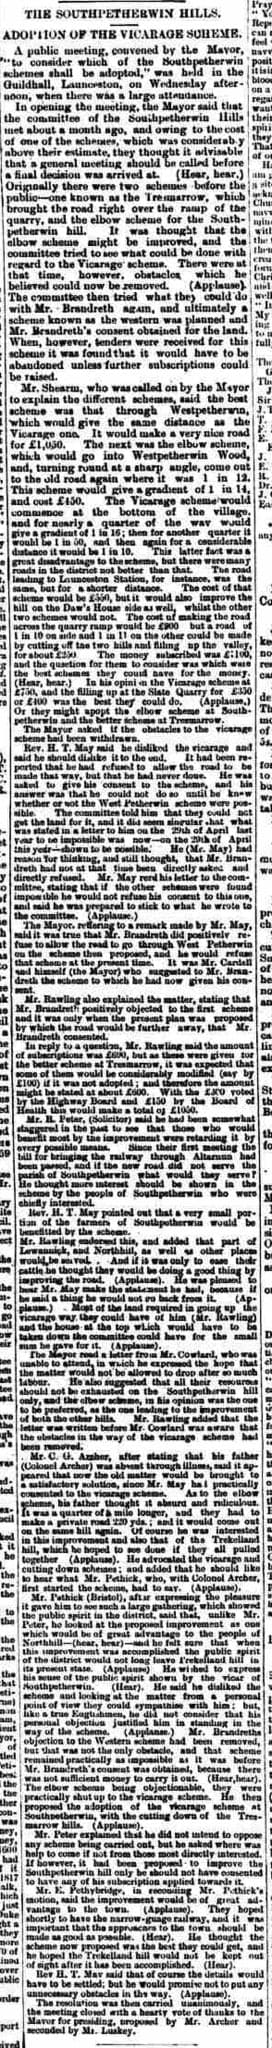 article-from-the-cornish-devon-post-02-may-1885-in-regard-to-the-south-petherwin-hills-scheme